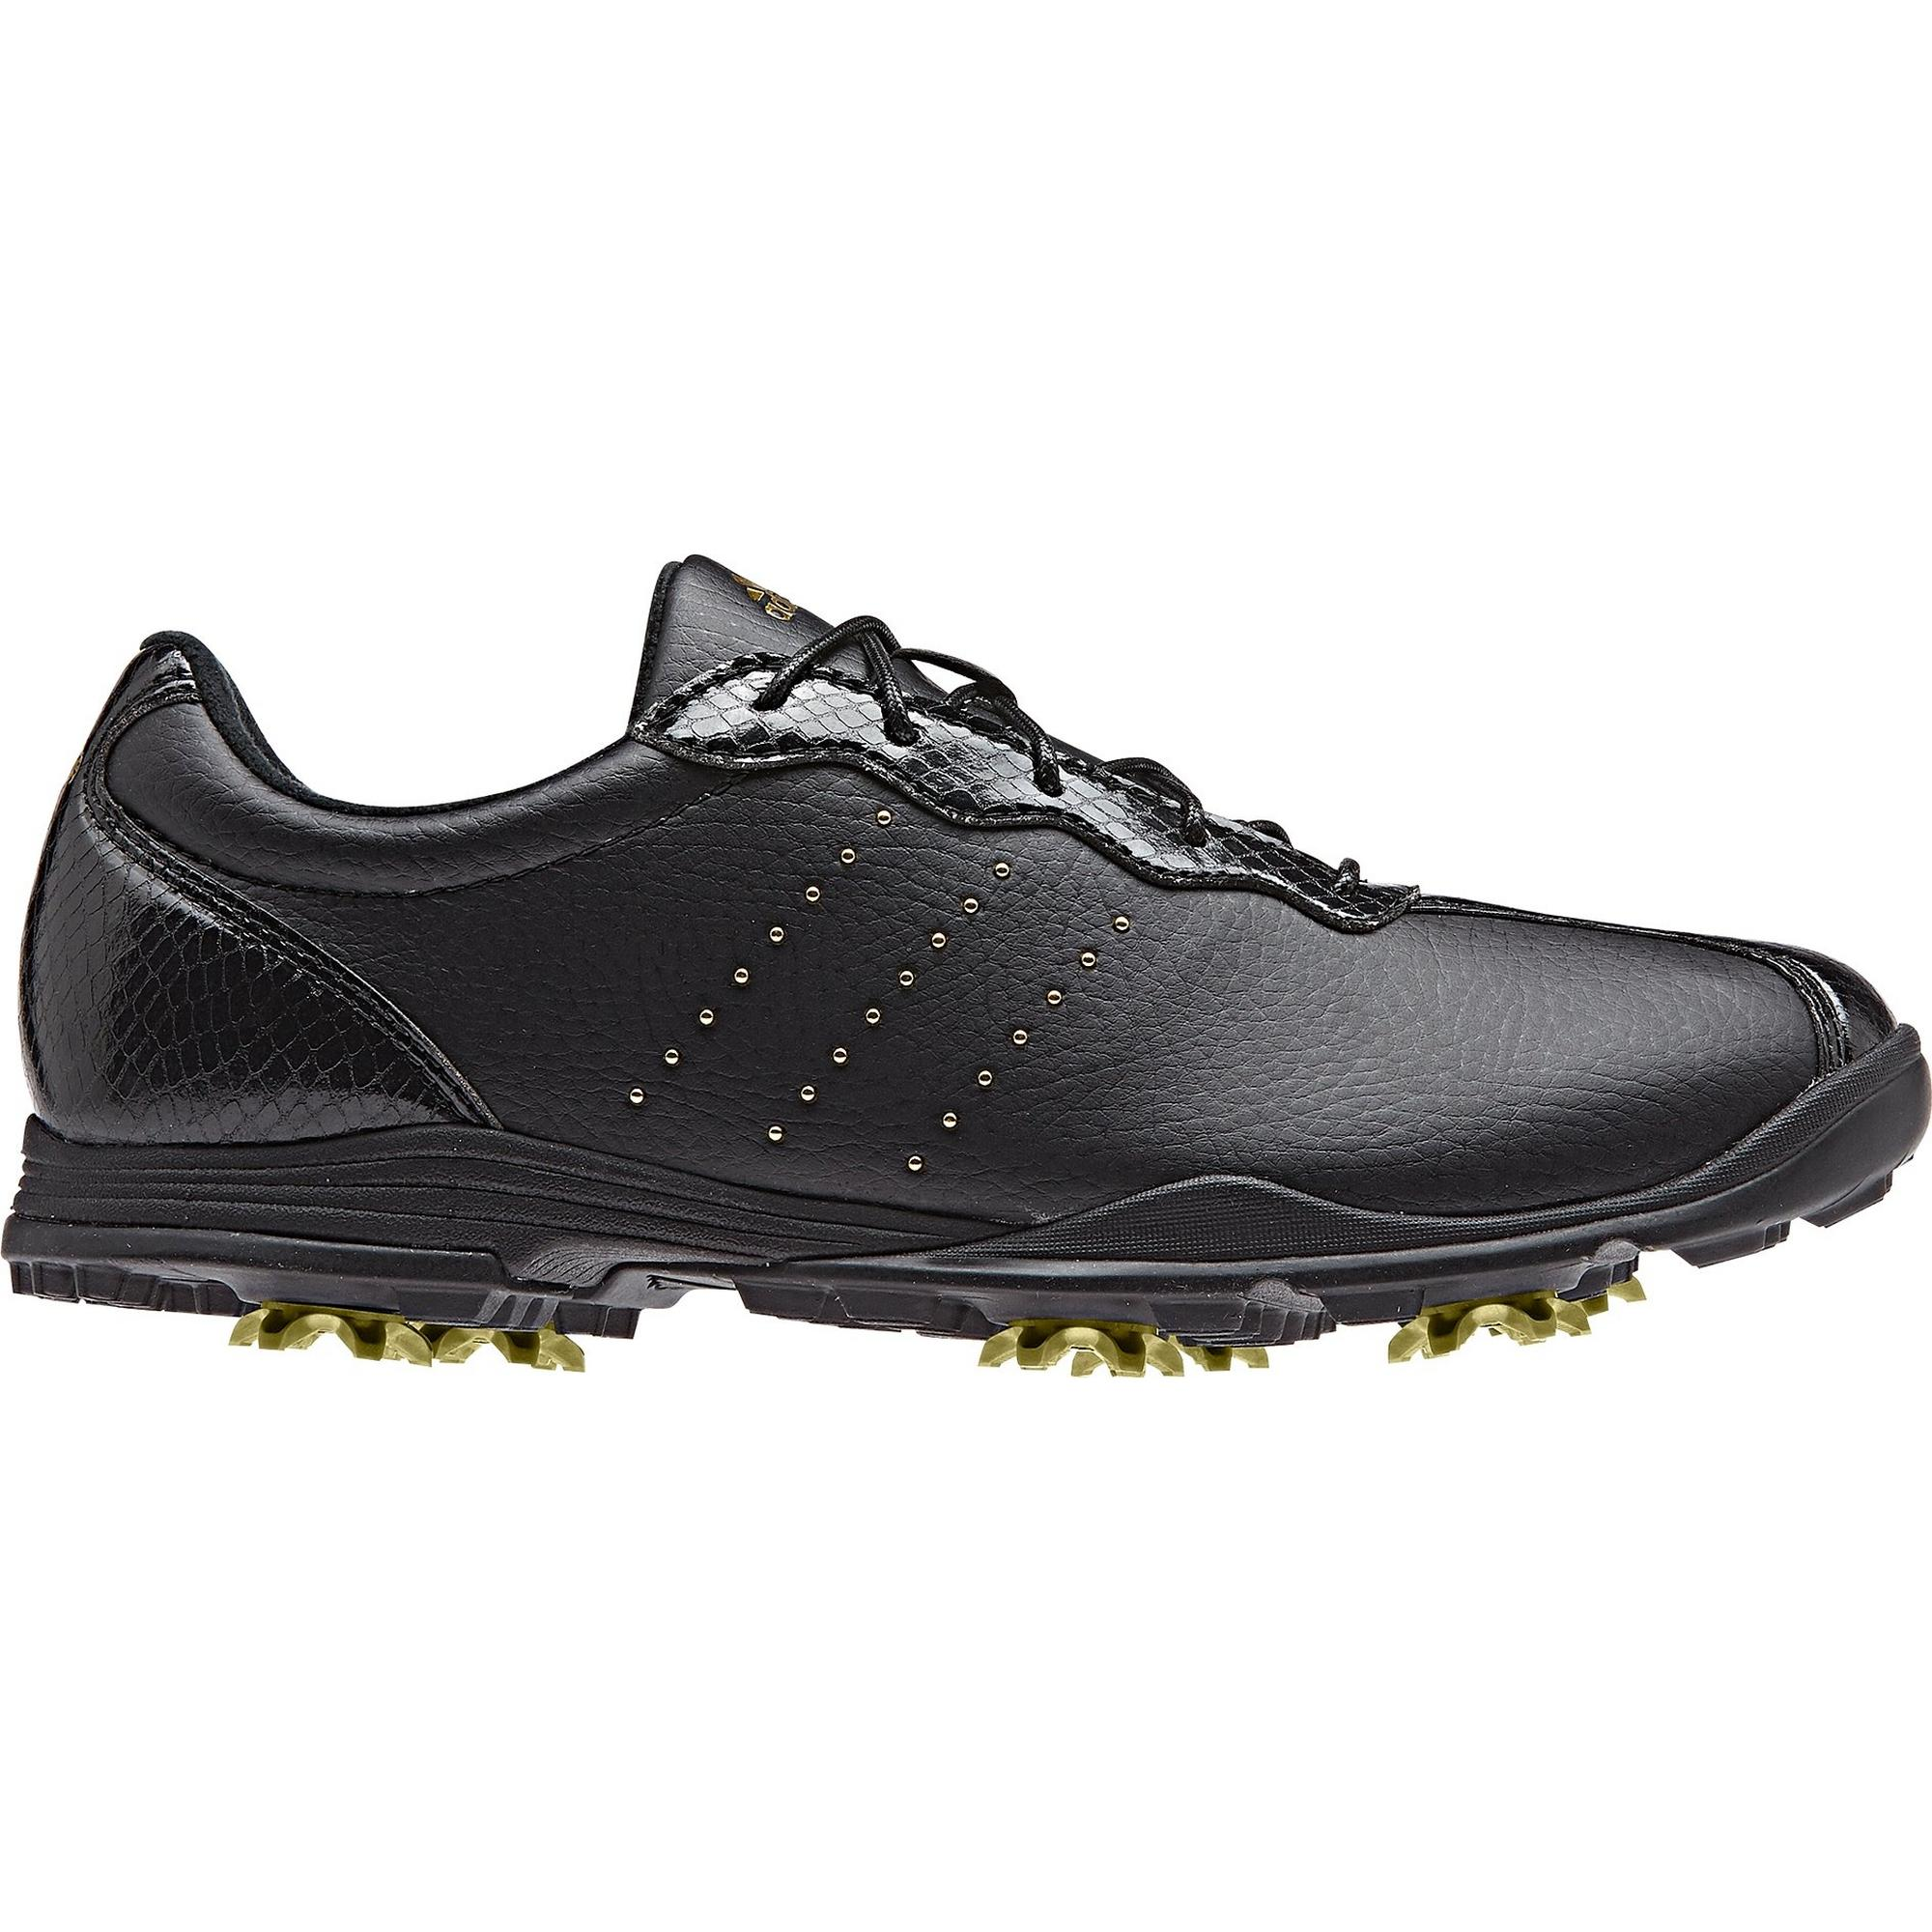 Women's Adipure Tour Spiked Golf Shoe - BLK/GLD